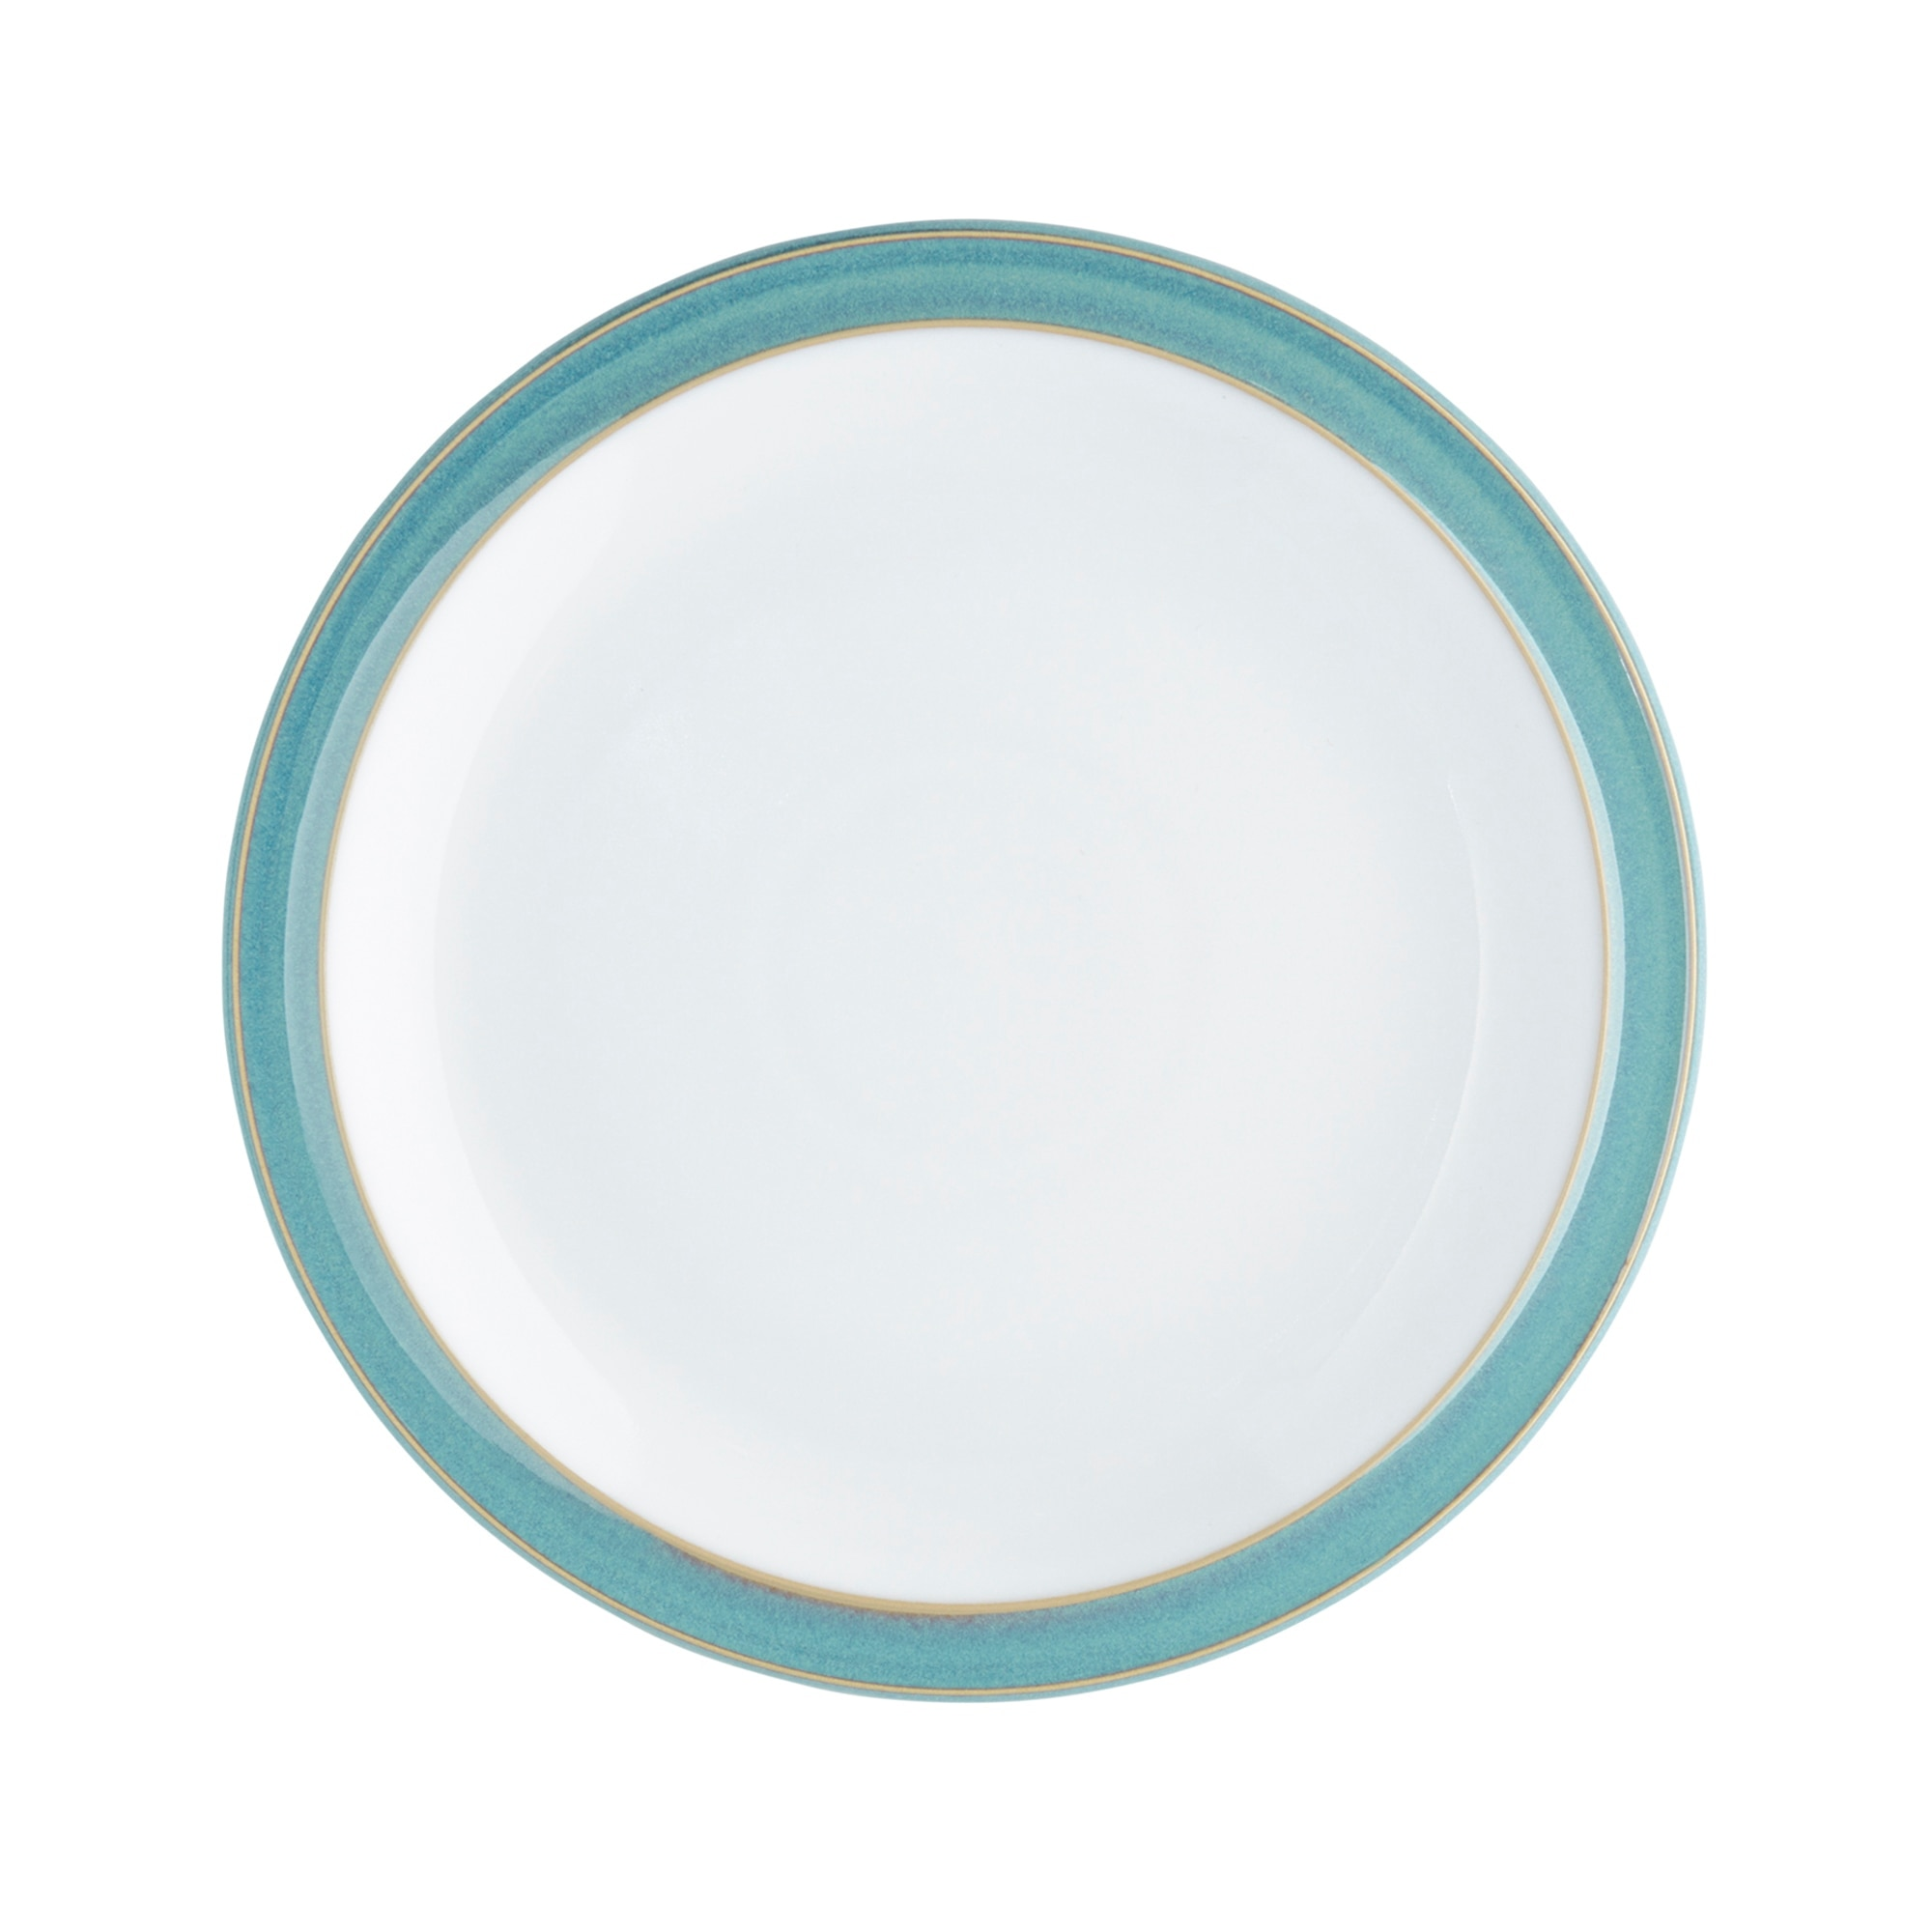 Compare prices for Denby Azure Medium Plate